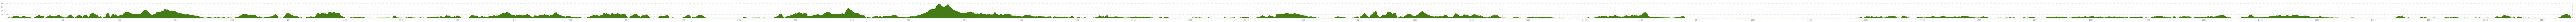 Elevation profile Cycle Route Shetland - Dover